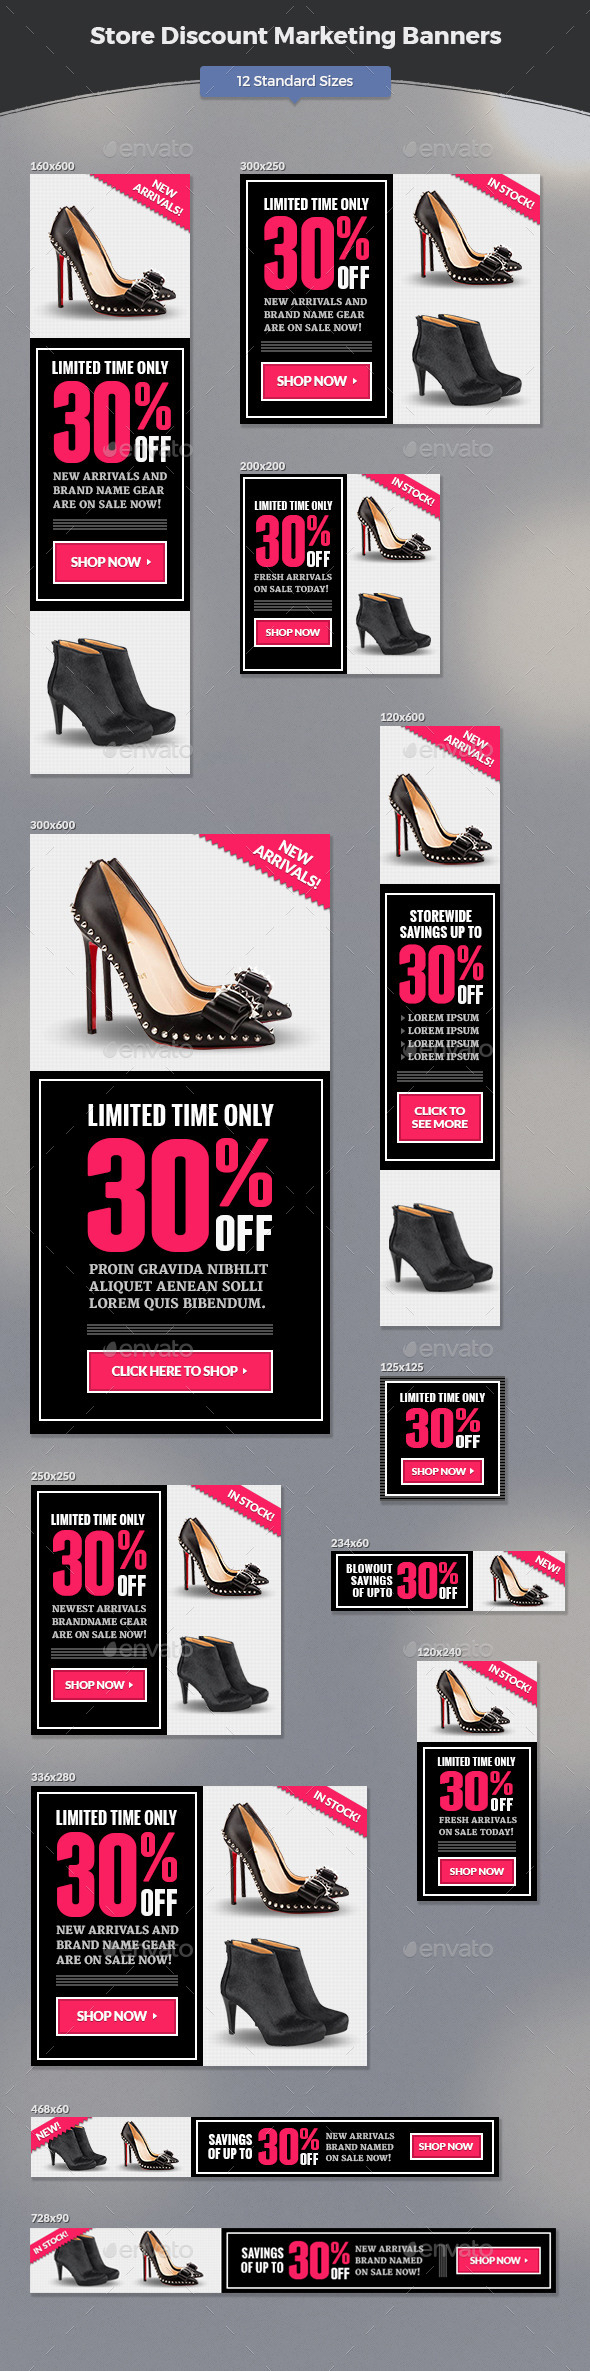 Store Discount Marketing Banners - Banners & Ads Web Elements